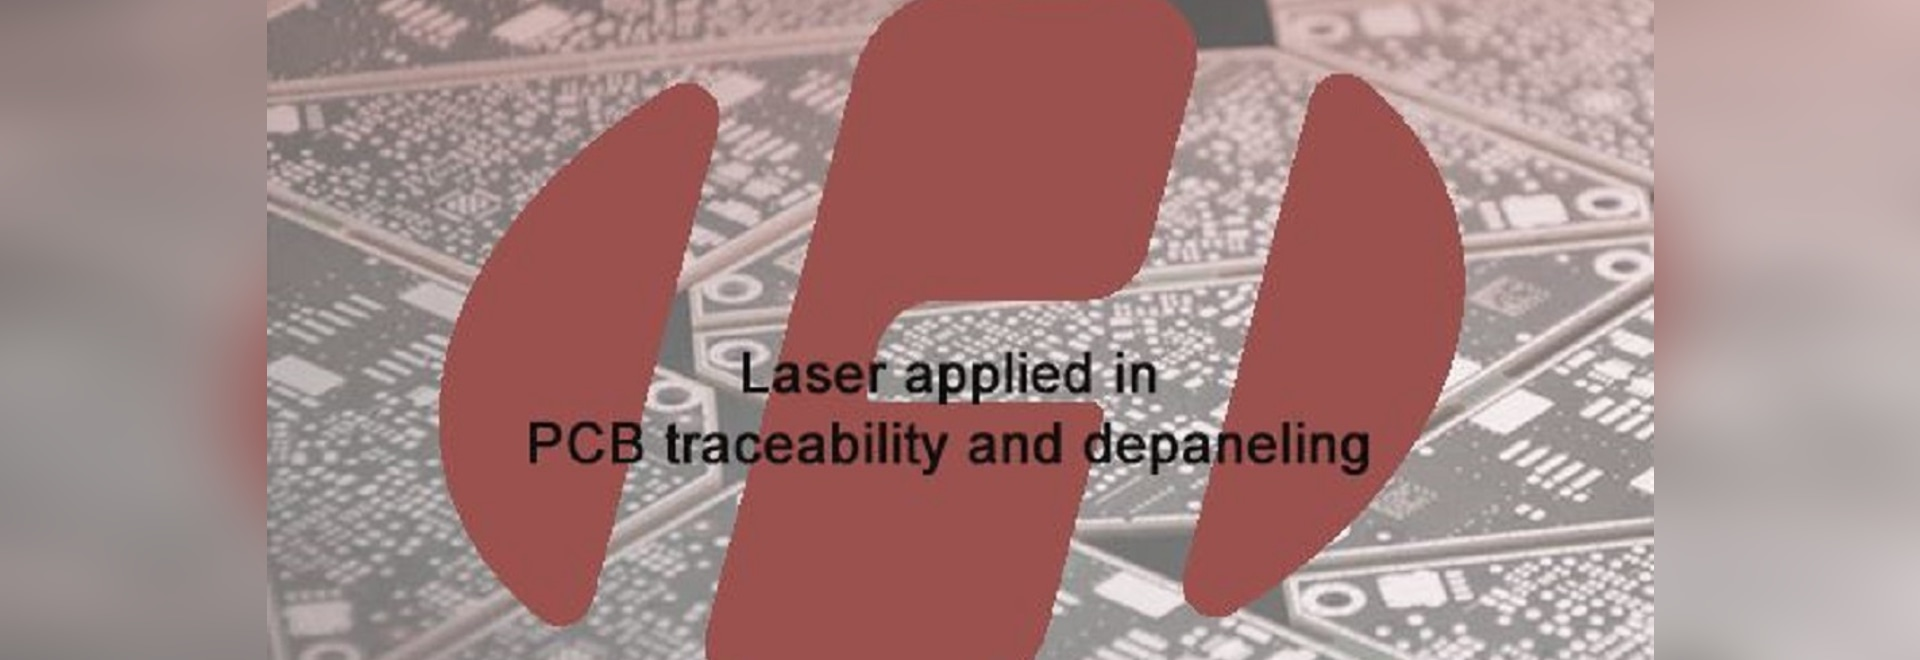 Laser applied in PCB traceability and depaneling - Wuhan, Hubei